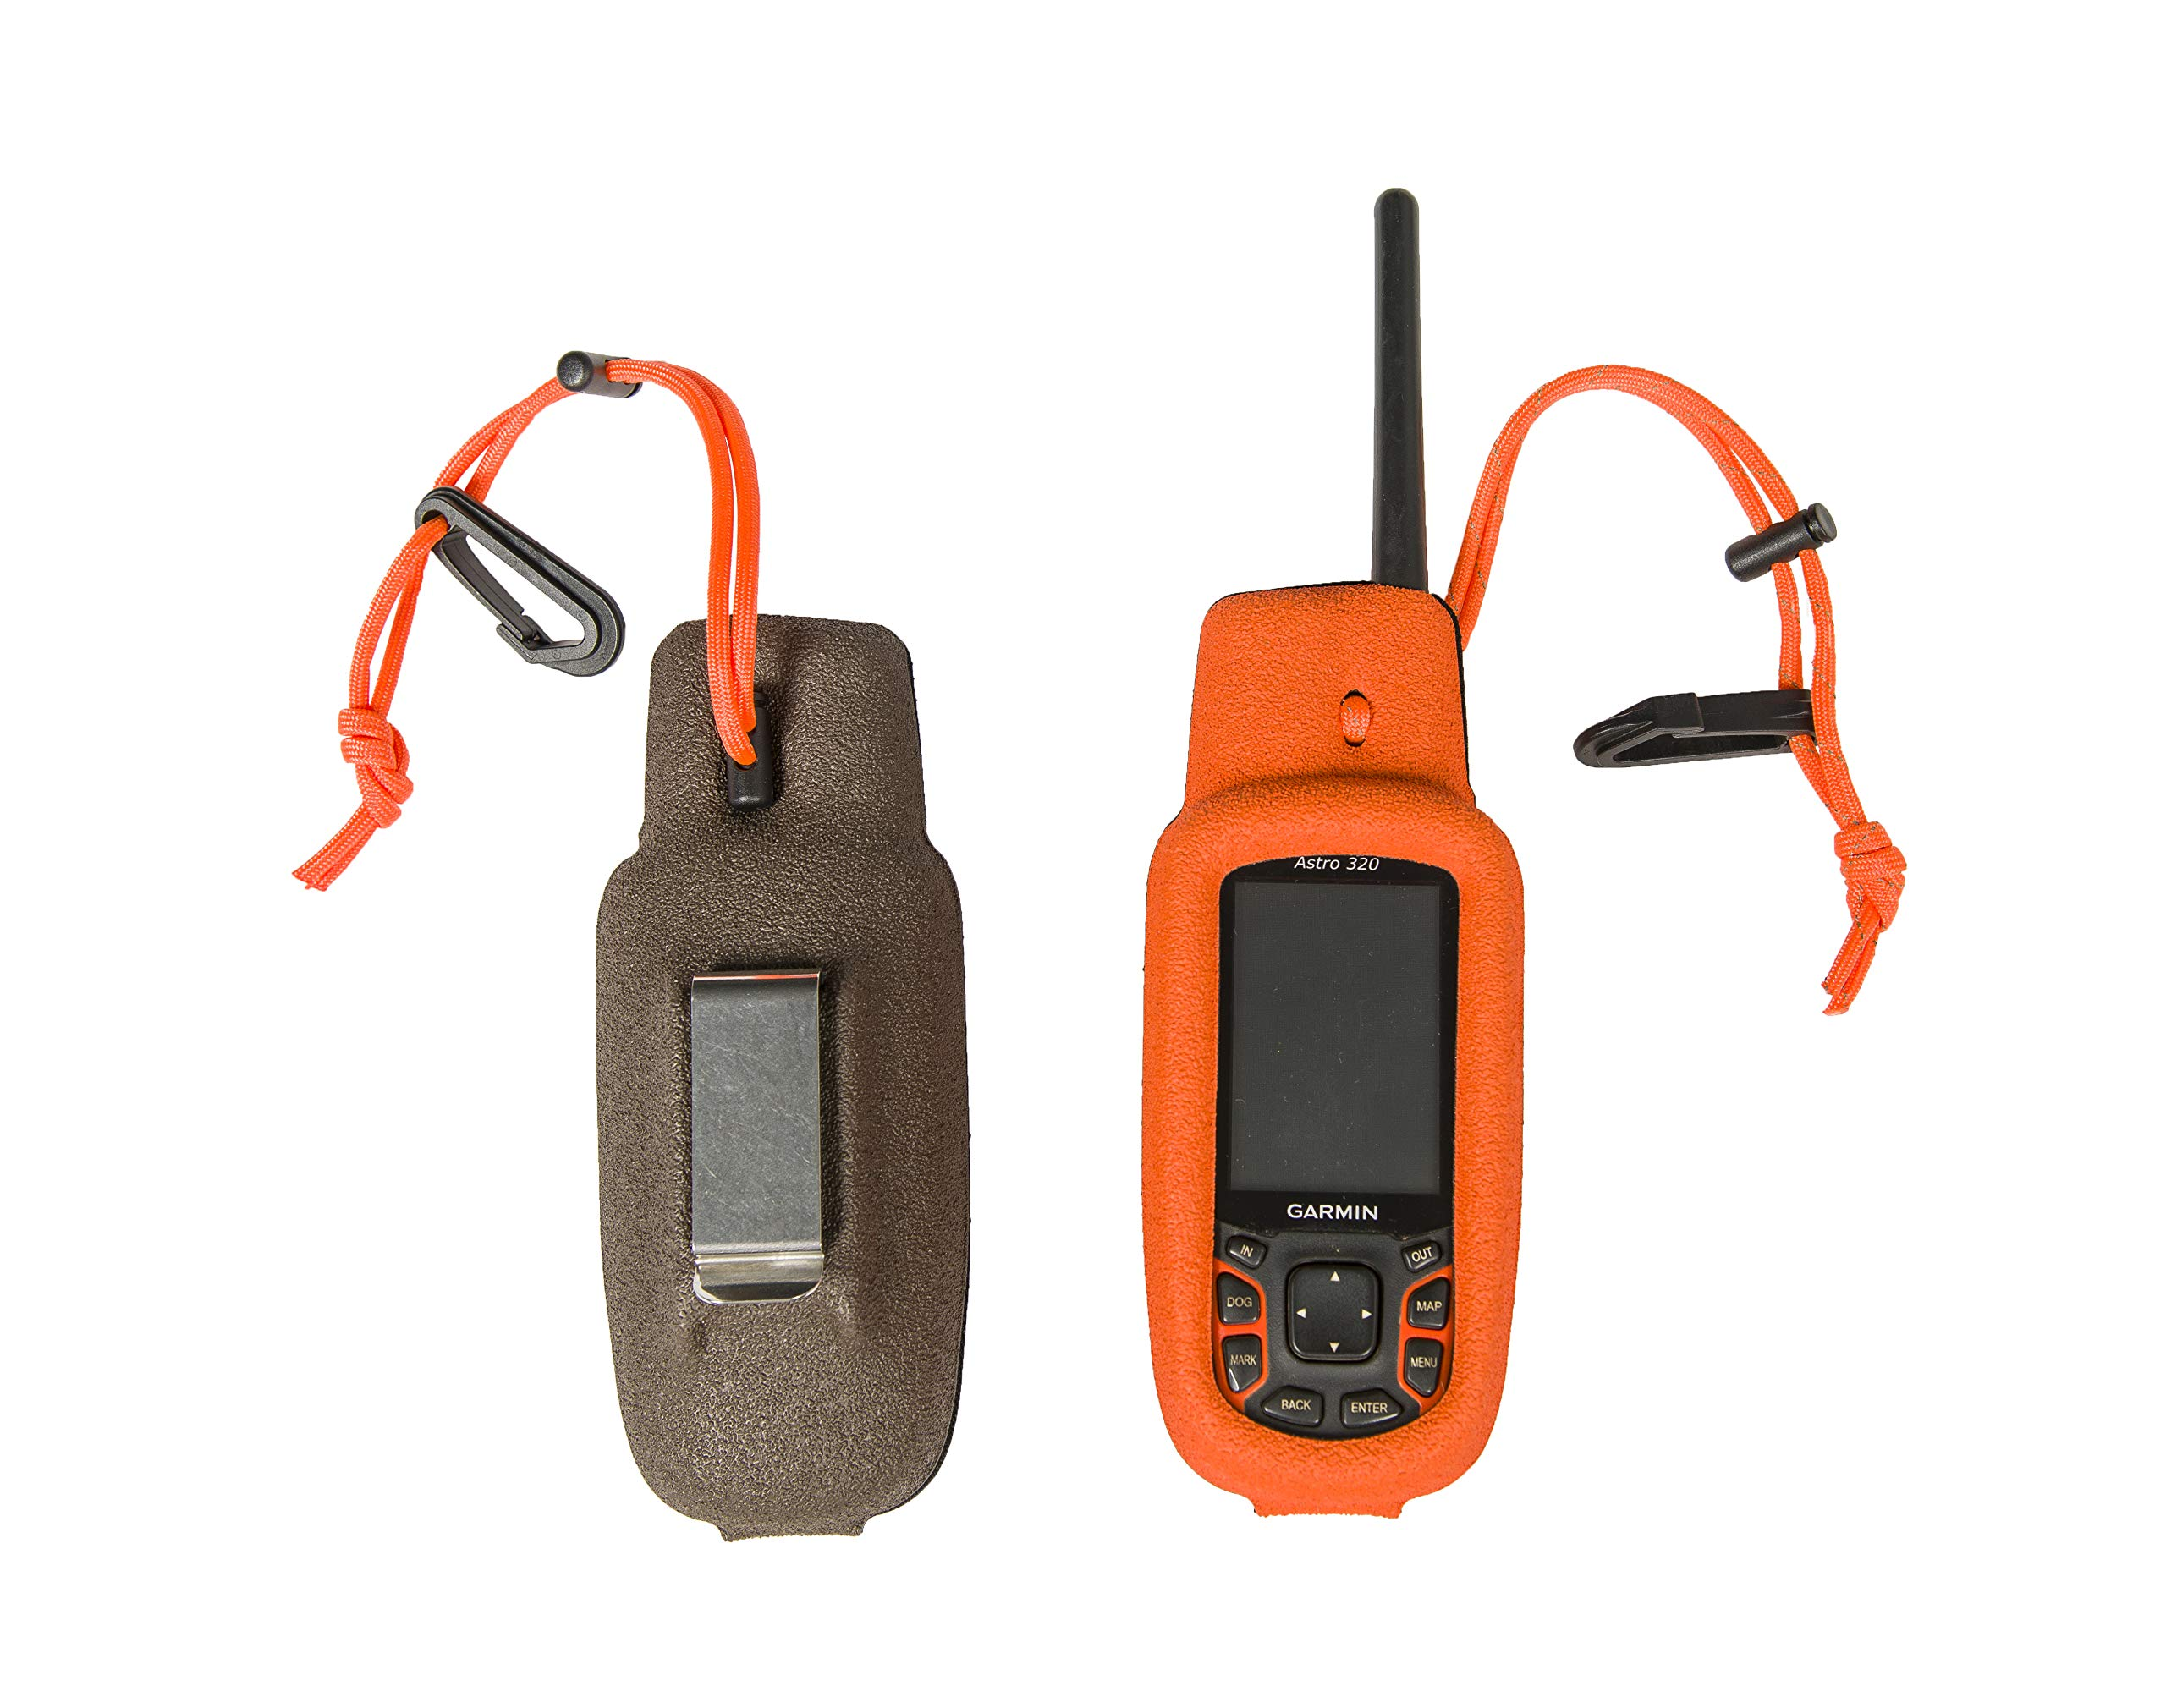 Gizzmo Vest for Garmin Alpha 100, Astro 430 or 320 Handheld - Made in The USA (Alpha 100, Orange Dots Texture) by GizzMoVest, LLC